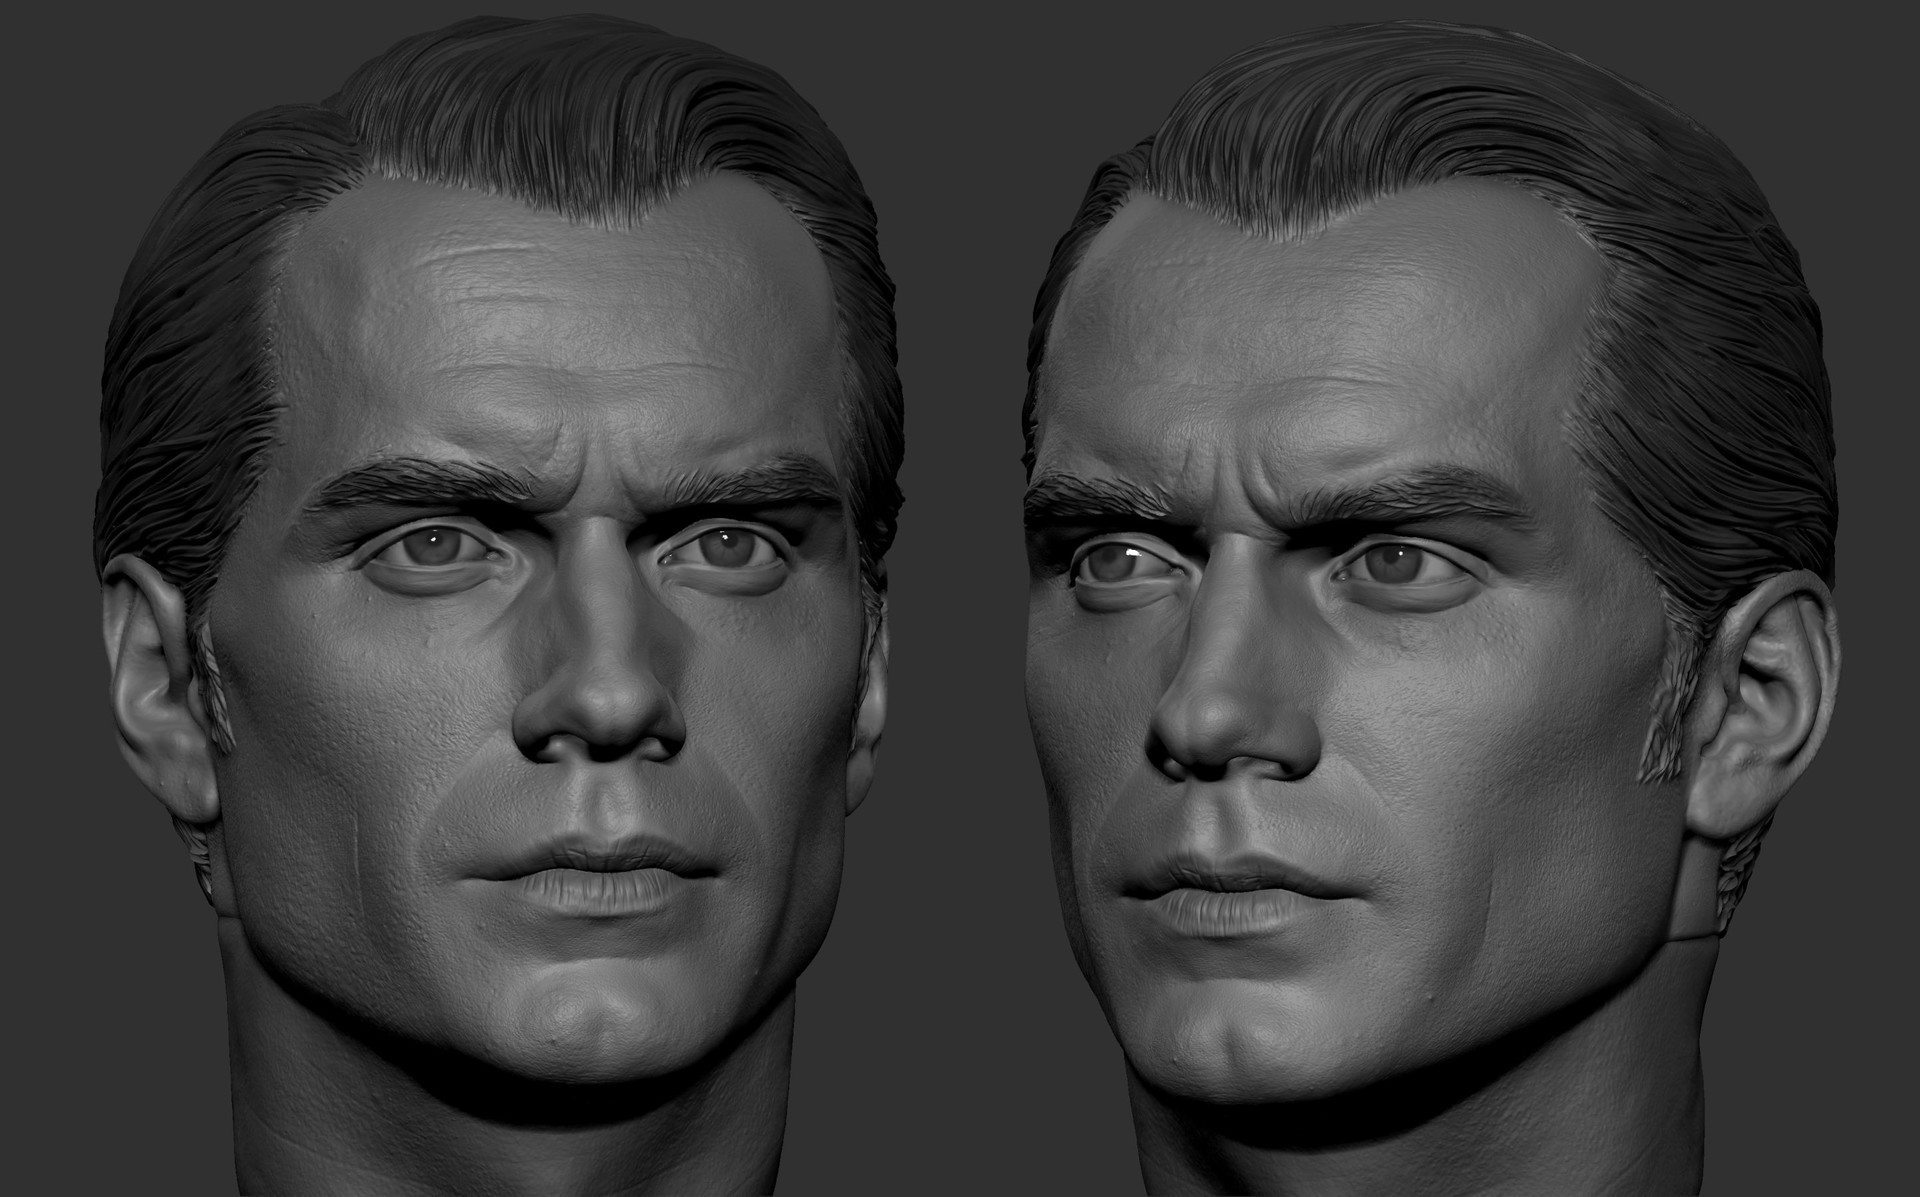 zbrush screen grab-01